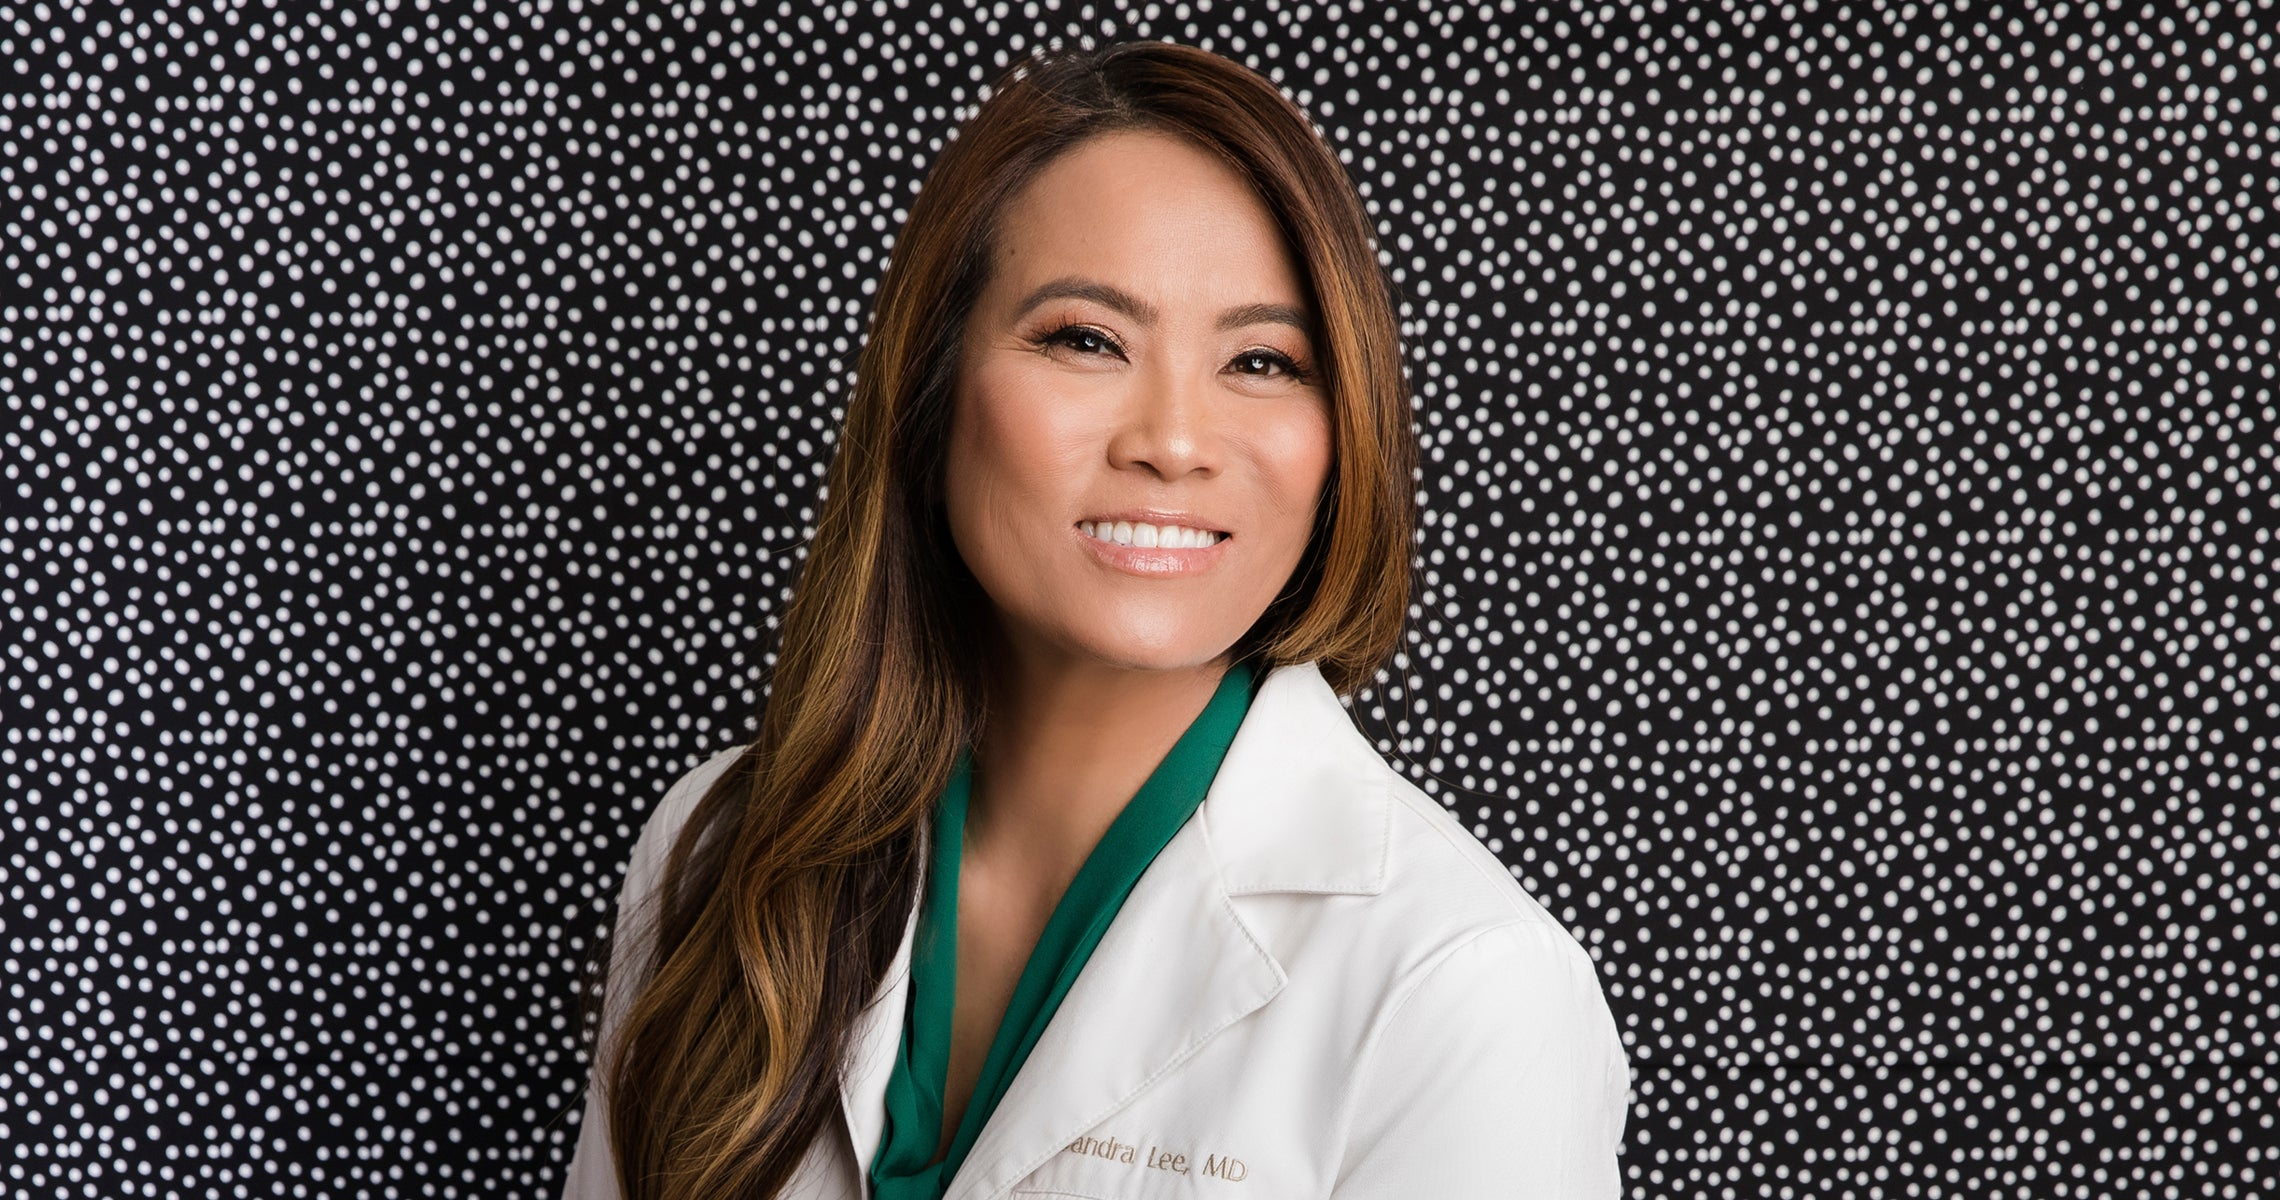 Dr. Pimple Popper, Sandra Lee M.D.